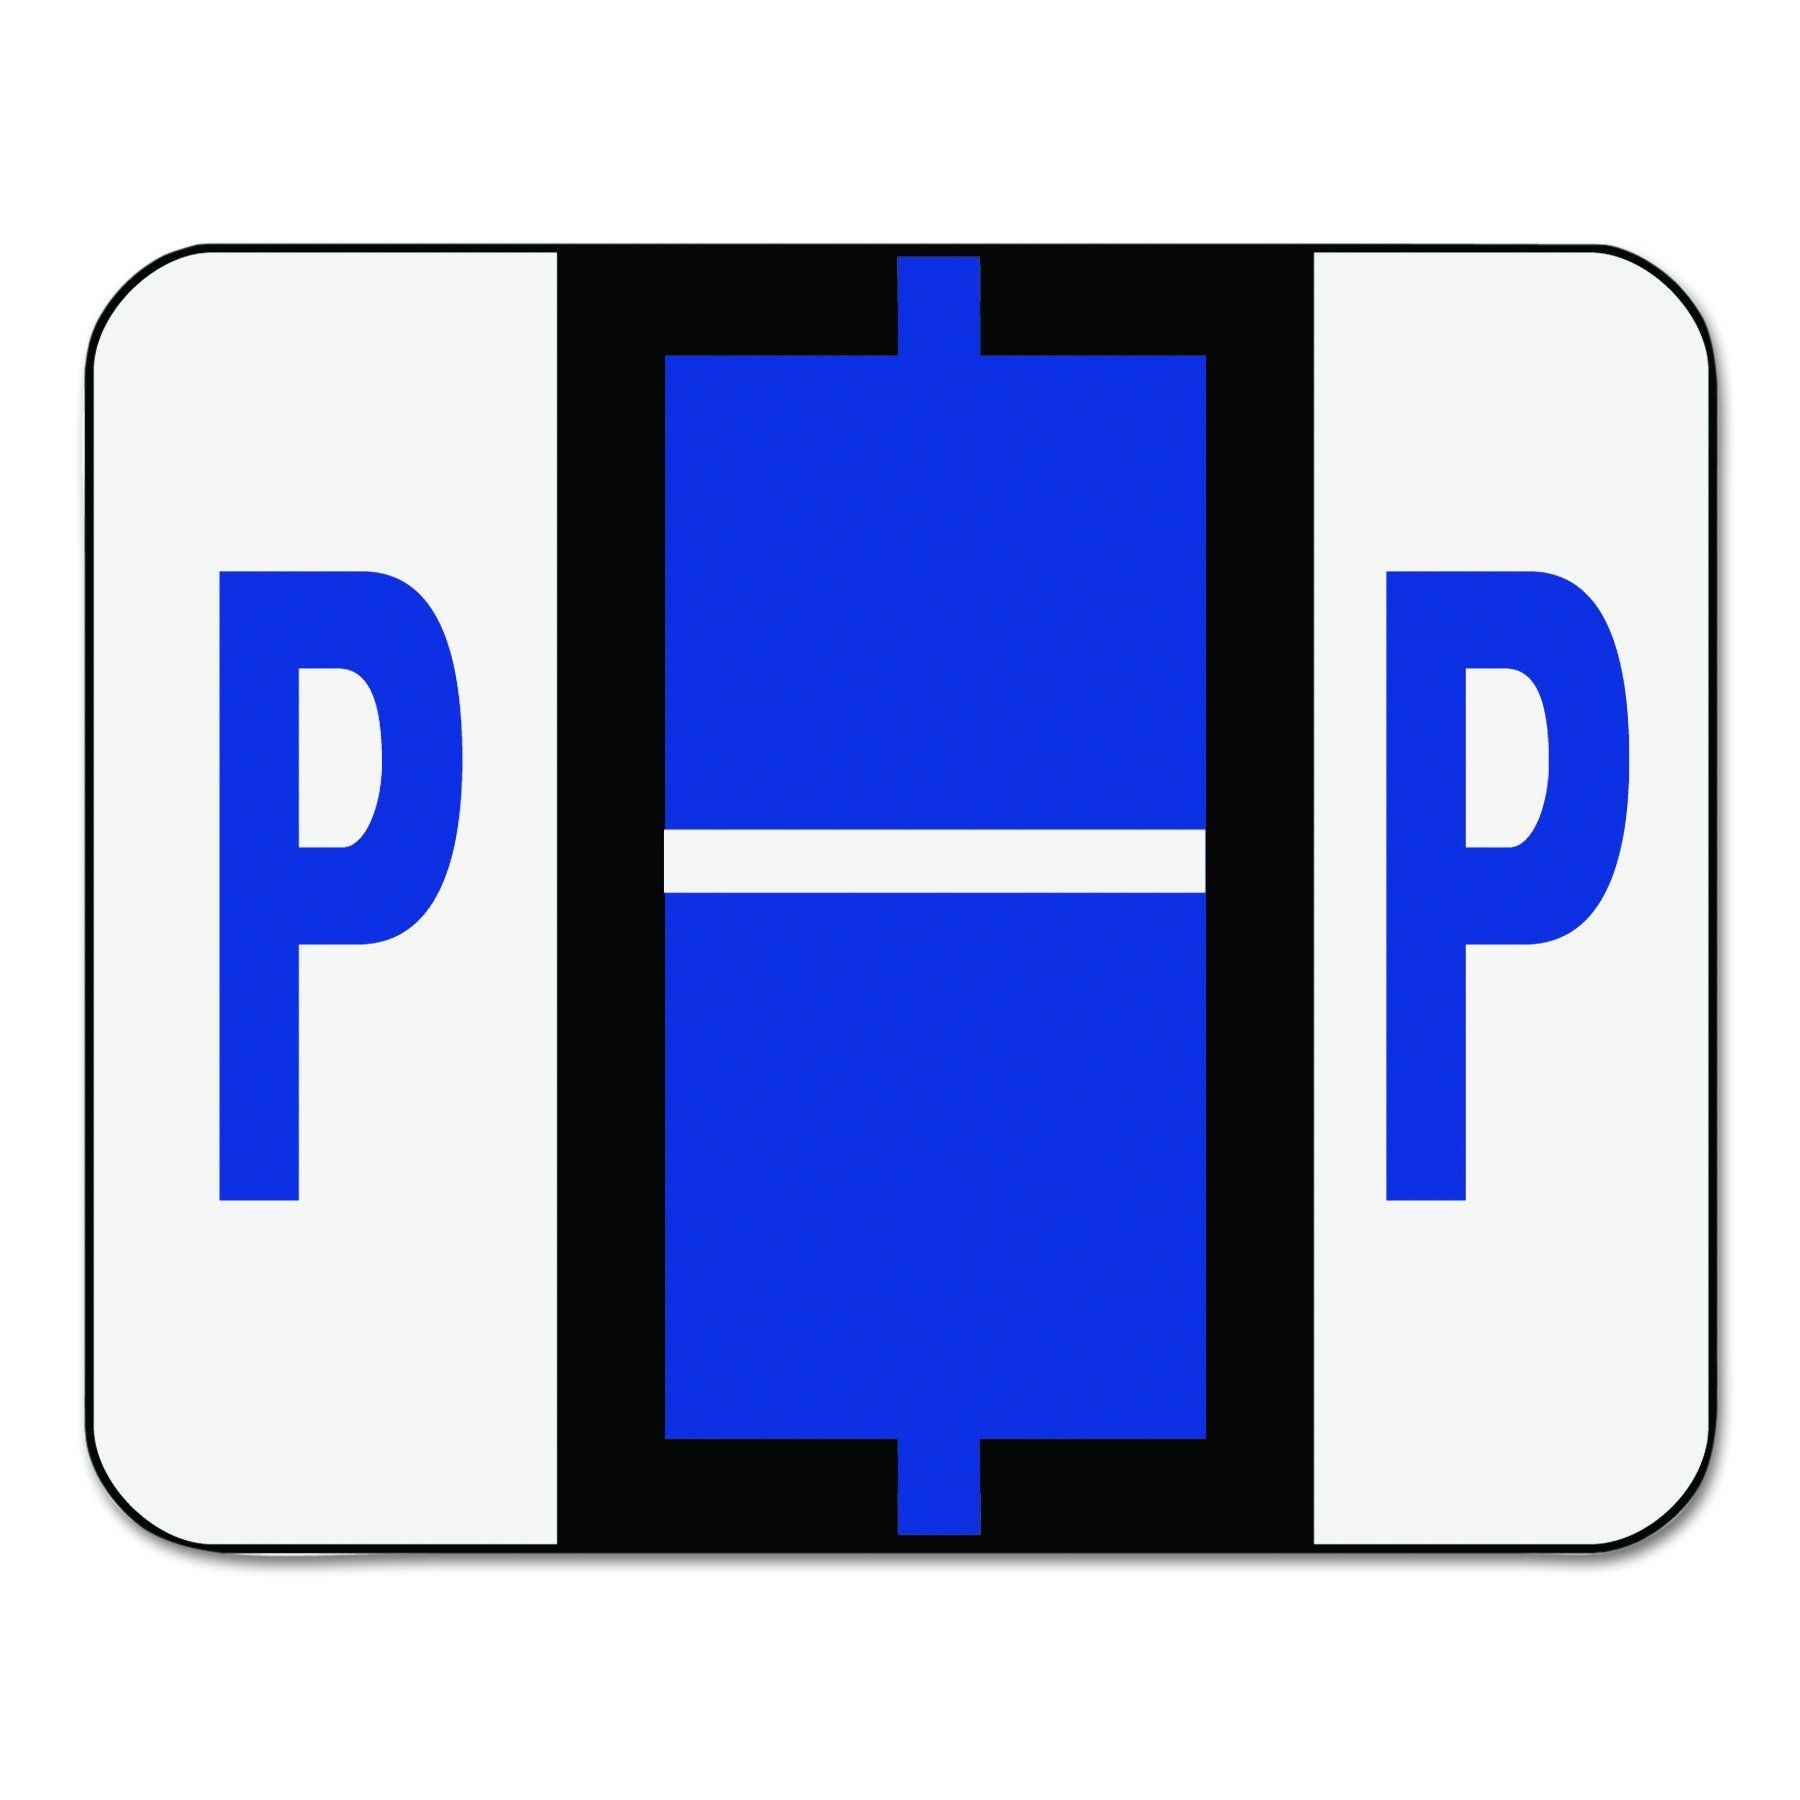 Smead 67086 A-Z Color-Coded Bar-Style End Tab Labels, Letter P, Violet, 500 per Roll